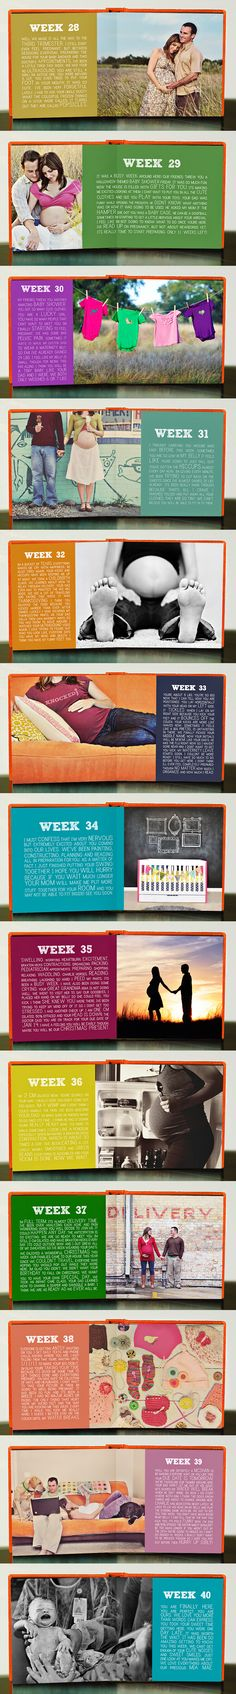 Week by week maternity photo book. Perhaps for future #2?